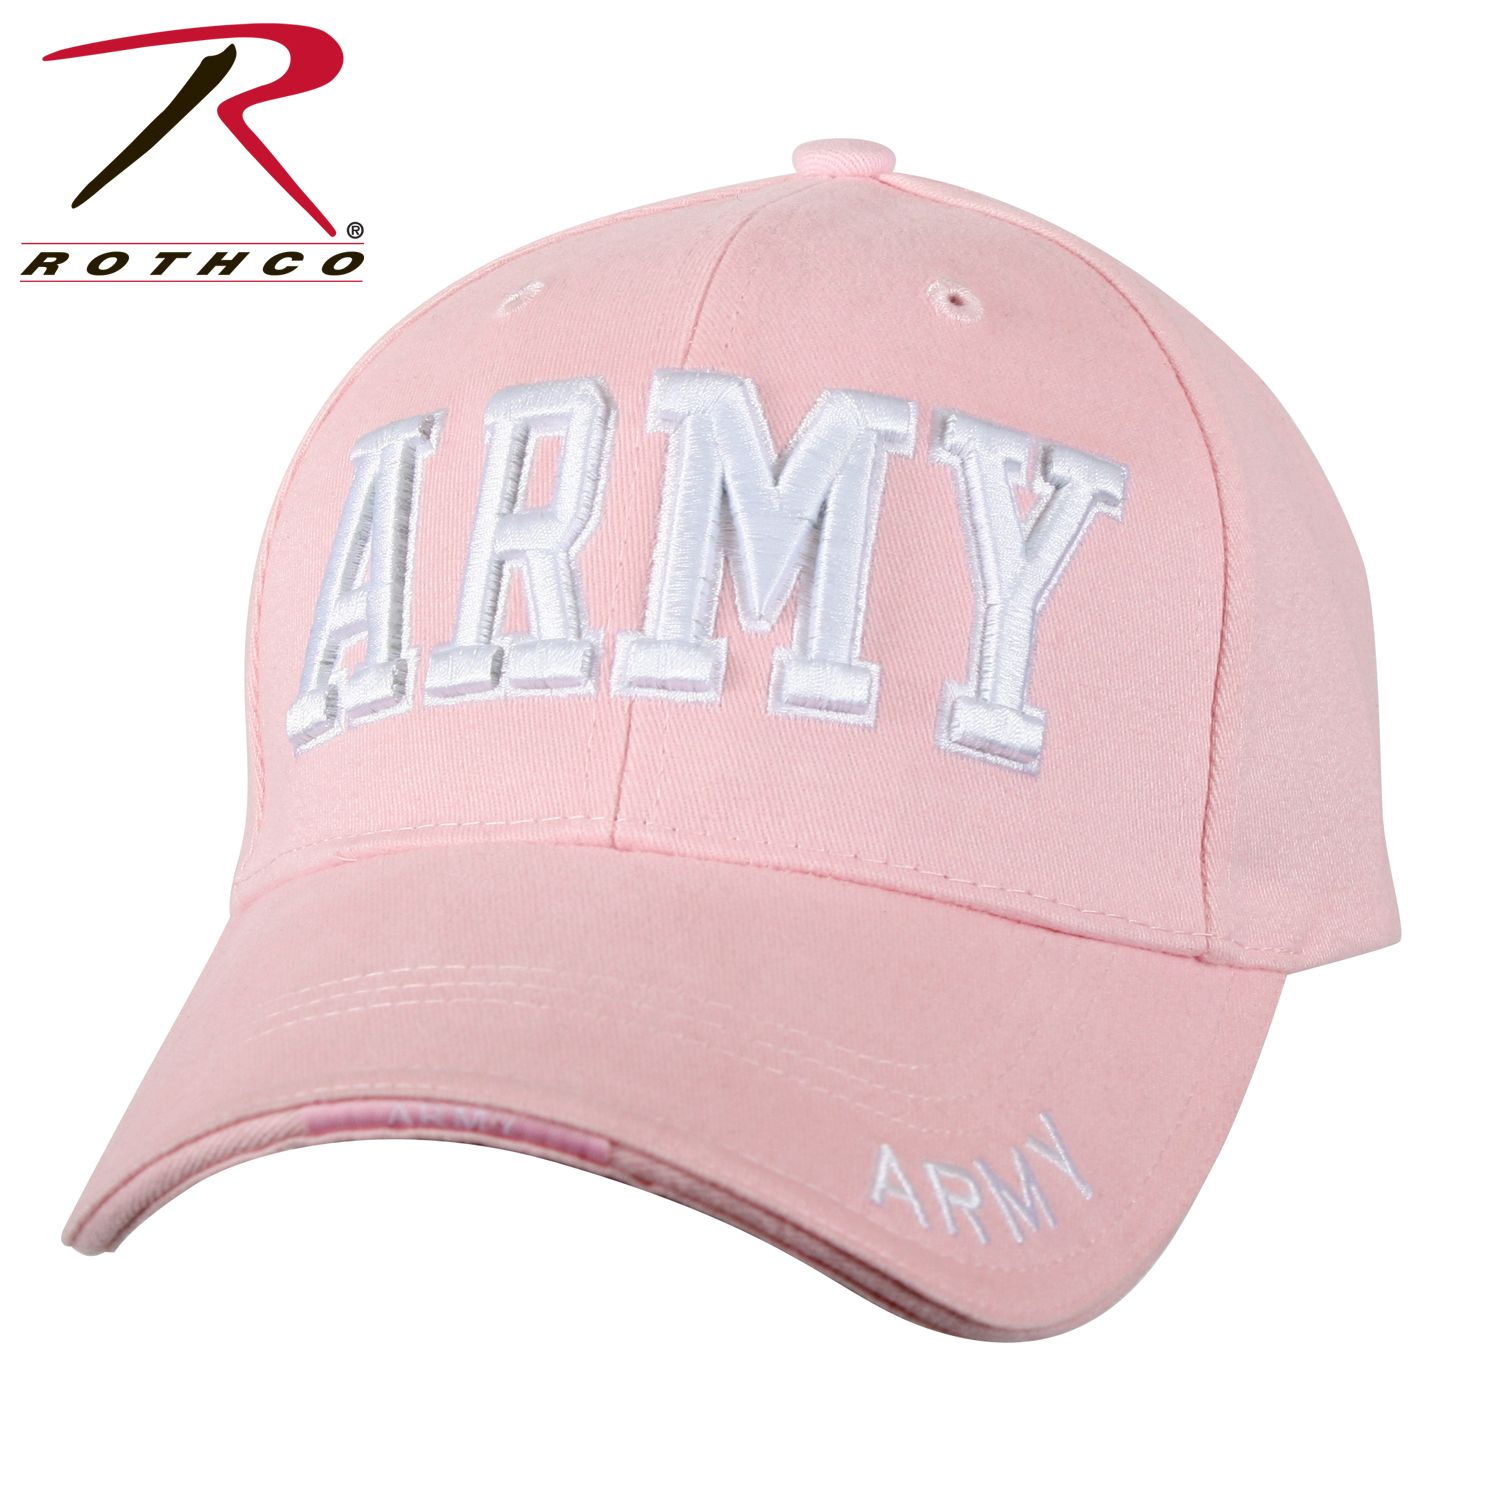 38f47a67167 Rothco Deluxe Army Embroidered Low Profile Insignia Cap-Rothco